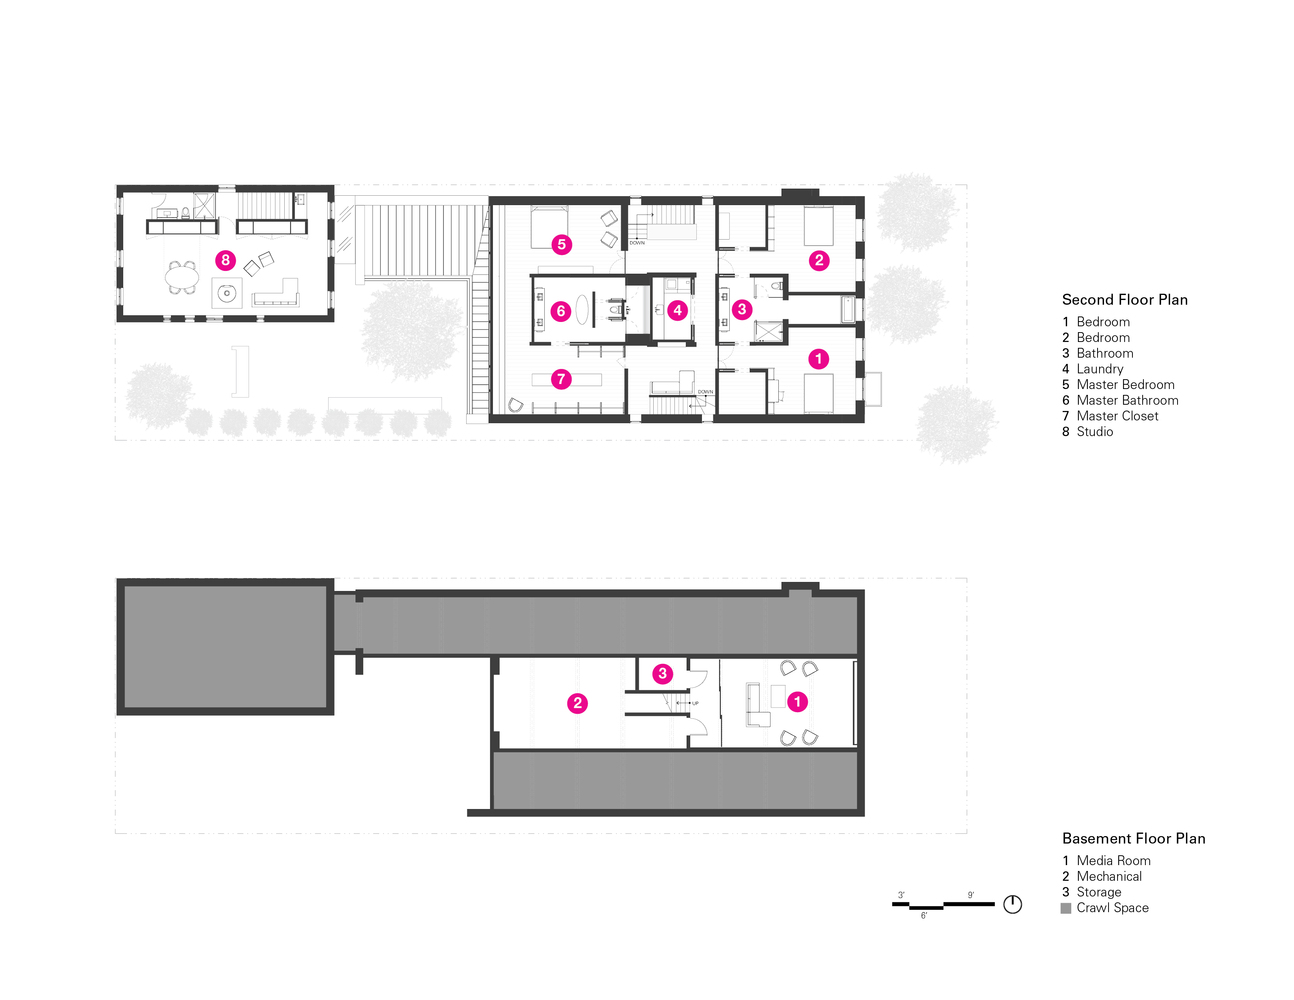 Wheeler Media Diagram Room Wiring Gallery Of Wicker Park Residence Kearns Architects 27 Rh Archdaily Com Chinese 4 Geology